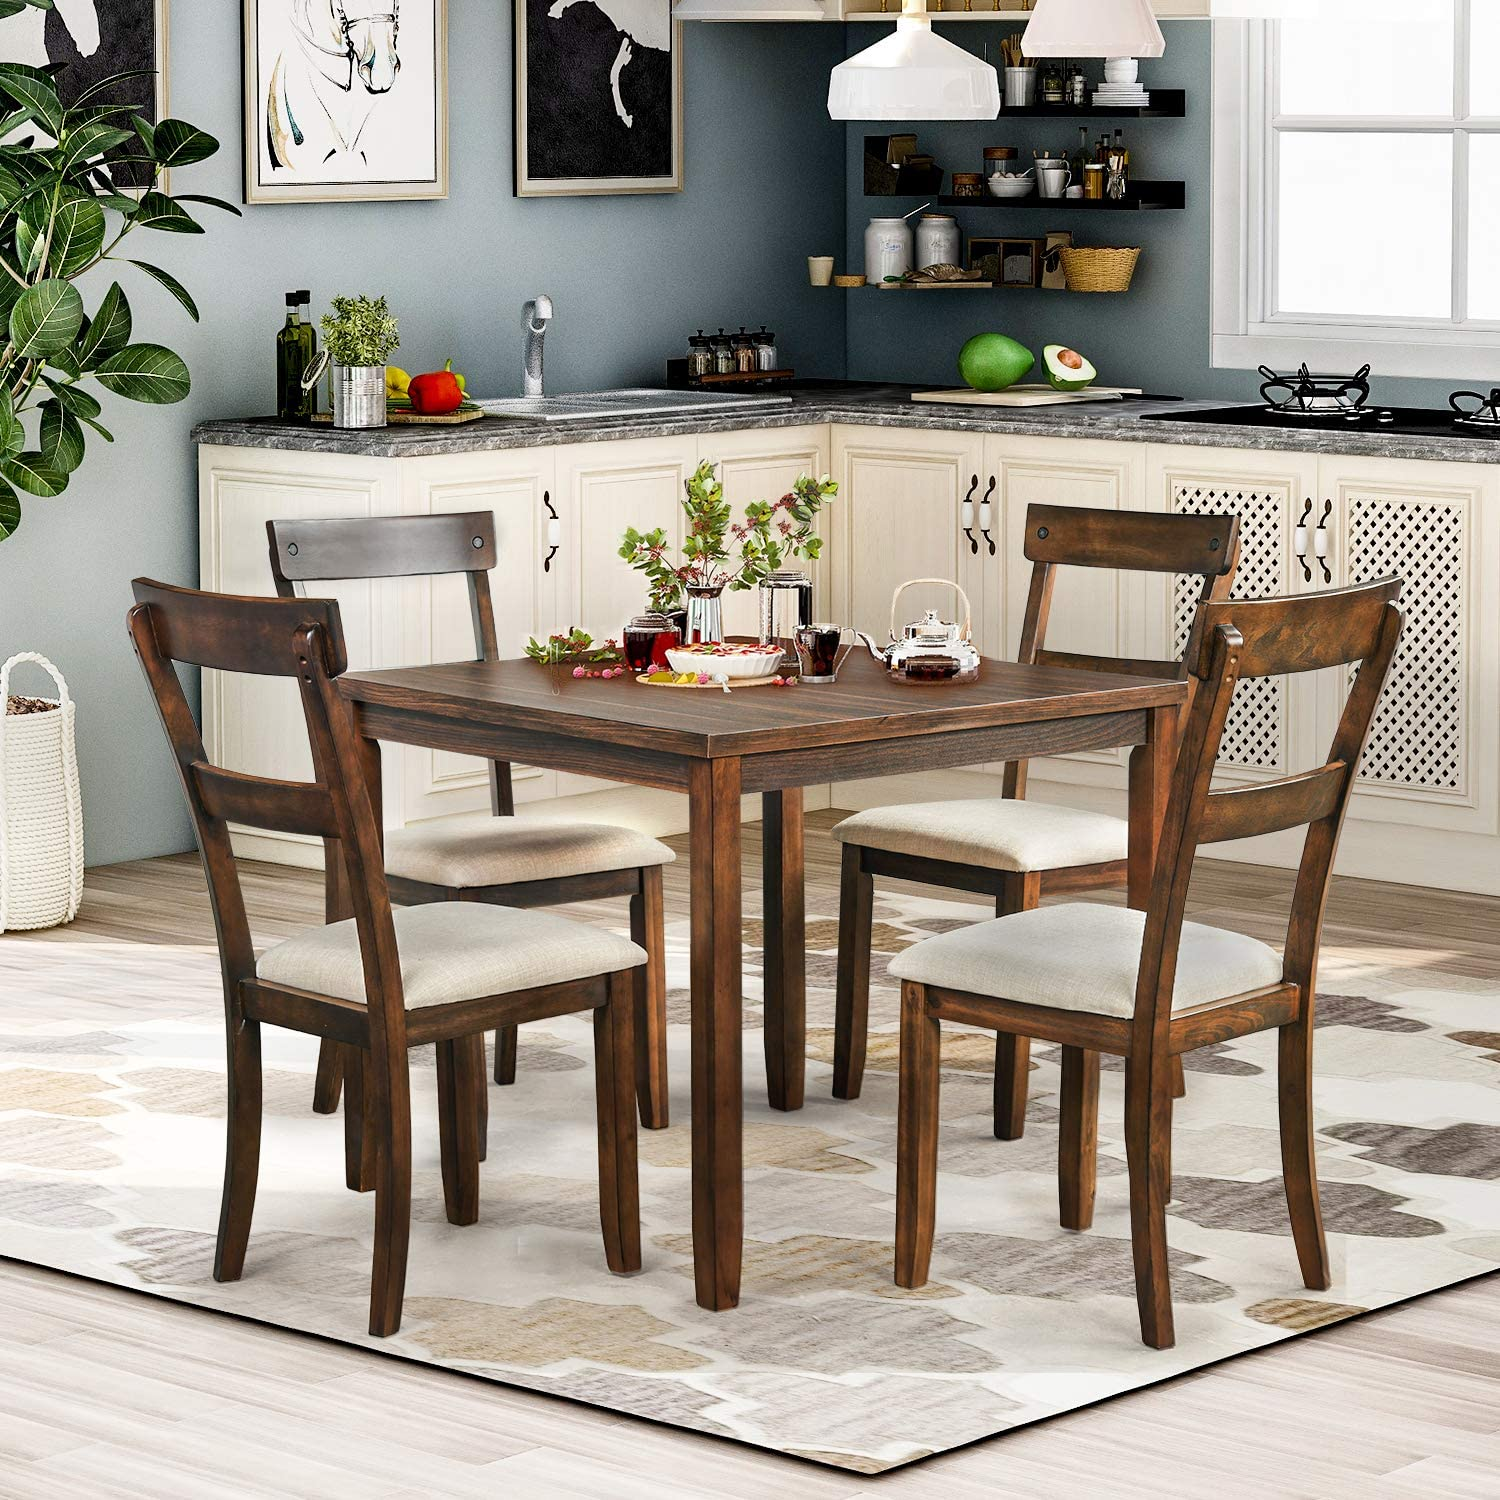 P PURLOVE 9 Piece Dining Table Set Rustic Wood Kitchen Table and 9 Chairs 9  Piece Wooden Dining Set for Kitchen Dining Room American Walnut